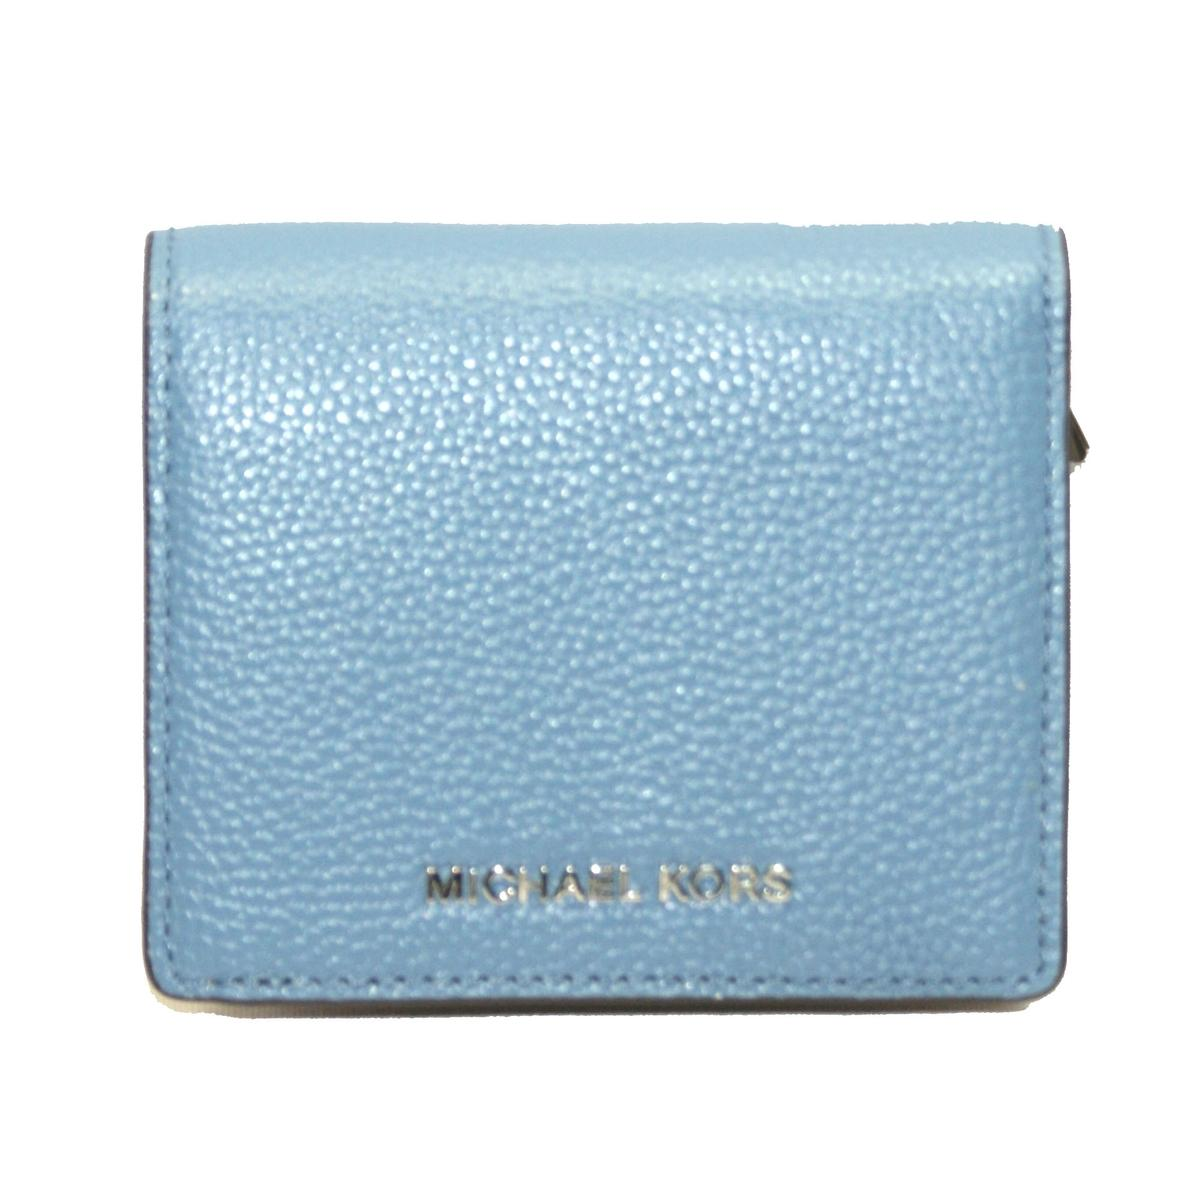 27ae51242d33 Home · Michael Kors · Mercer Leather Carryall Card Case Wallet/ Clutch  Denim. CLICK THUMBNAIL TO ZOOM. Found ...